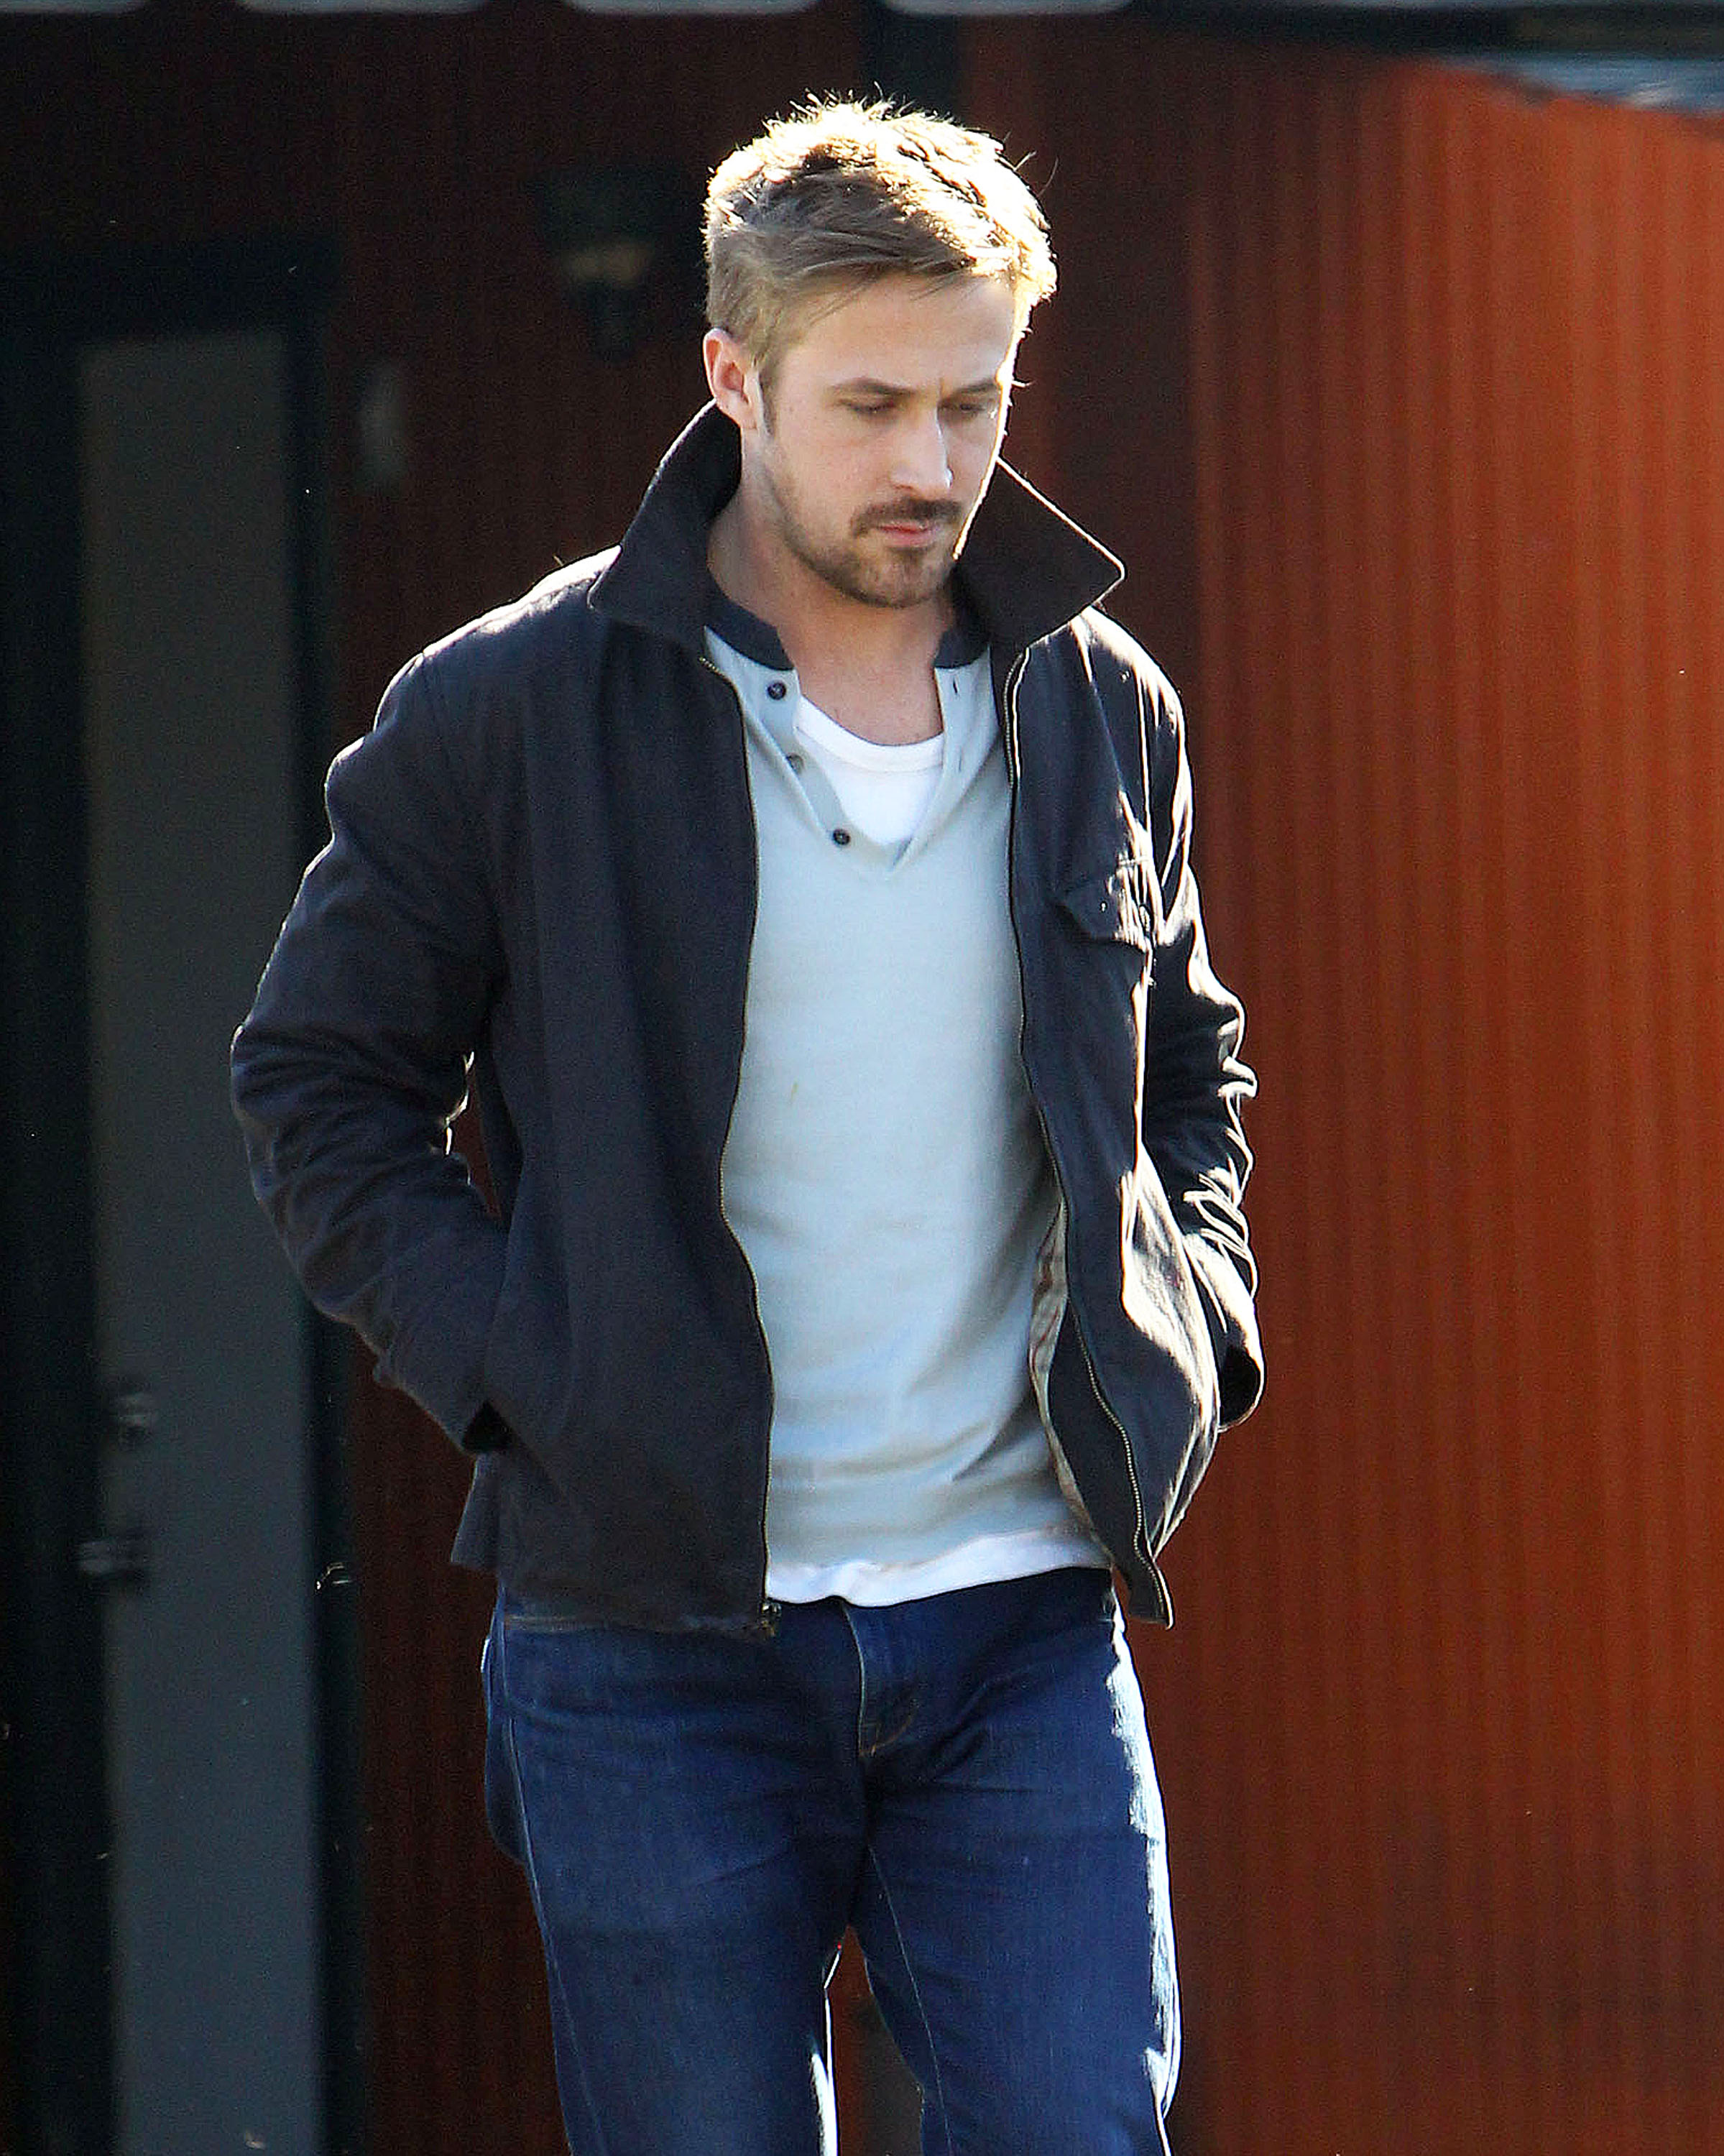 Ryan Gosling looked serious as he made his way through a parking lot after lunch in LA.